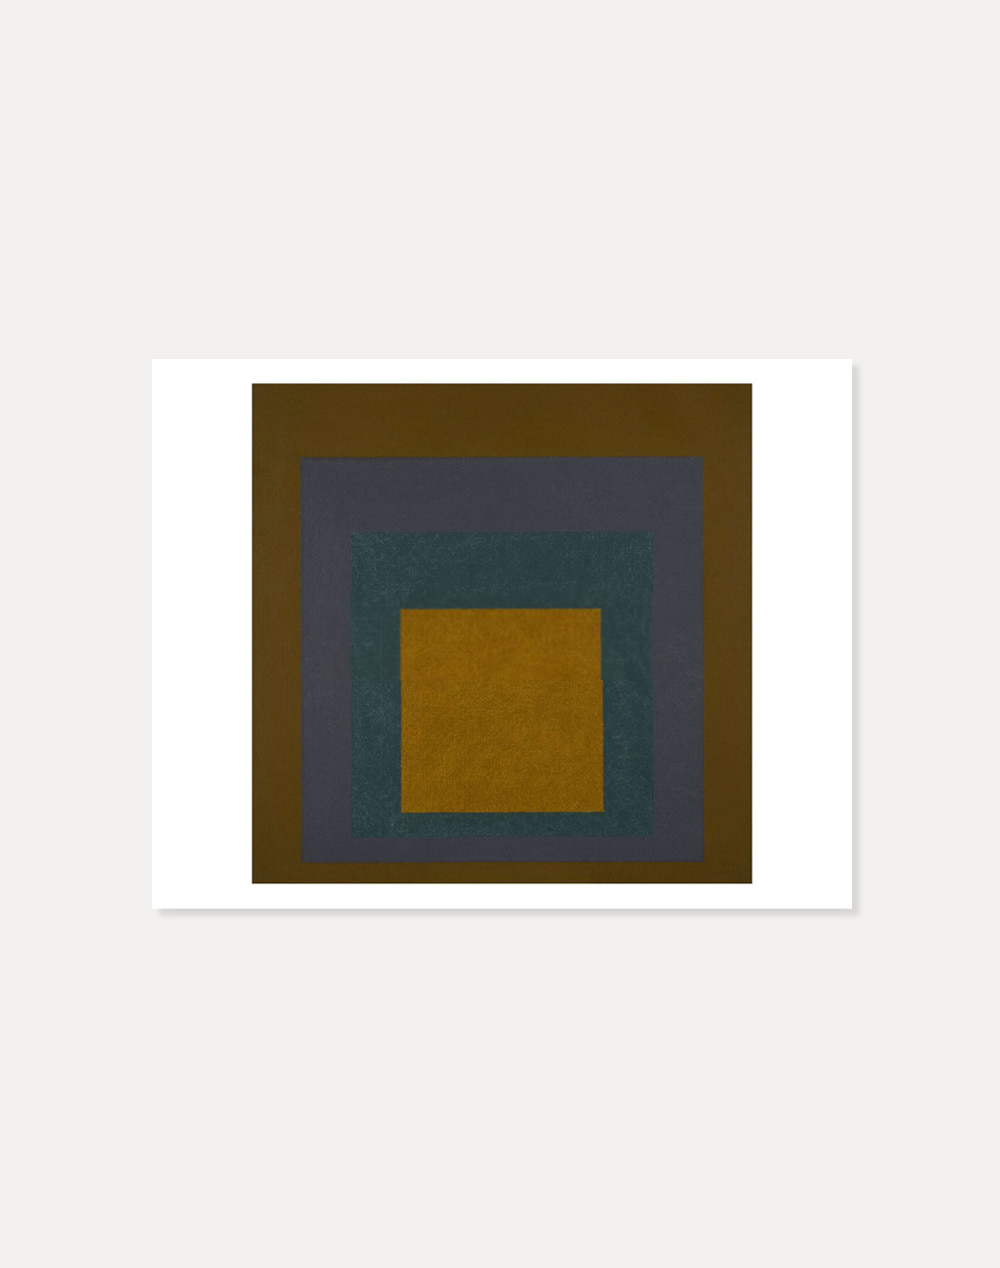 [죠세프 알베르스] Josef Albers —  Study for Homage to the Square:Brown&Dark Green 40.5 x 51 cm